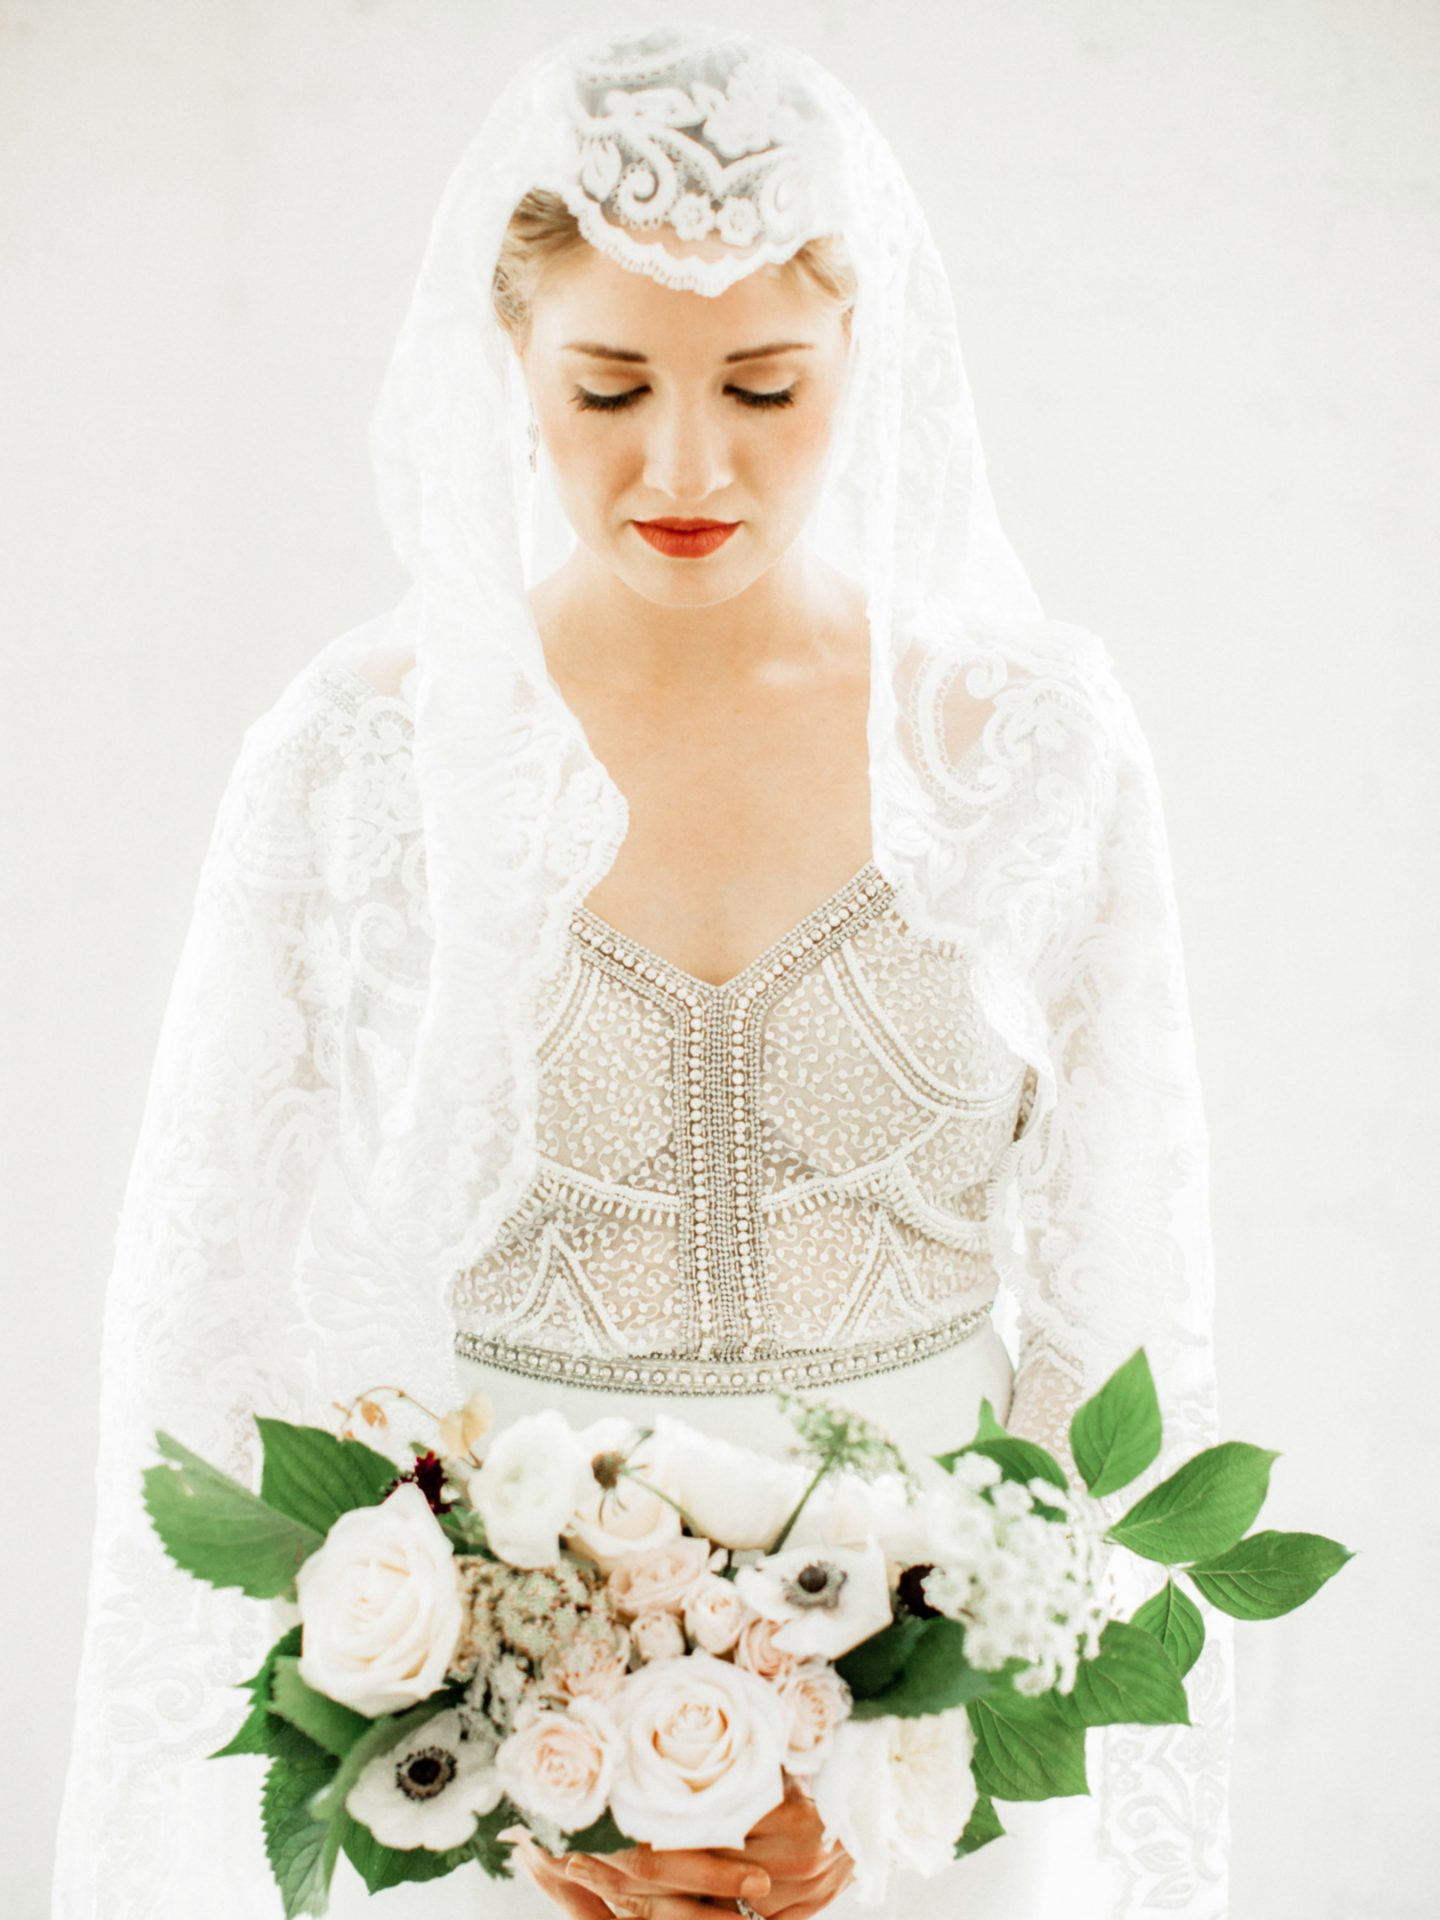 Modern Art Deco Wedding Inspiration-Inspiration Shoots - A. Cherie